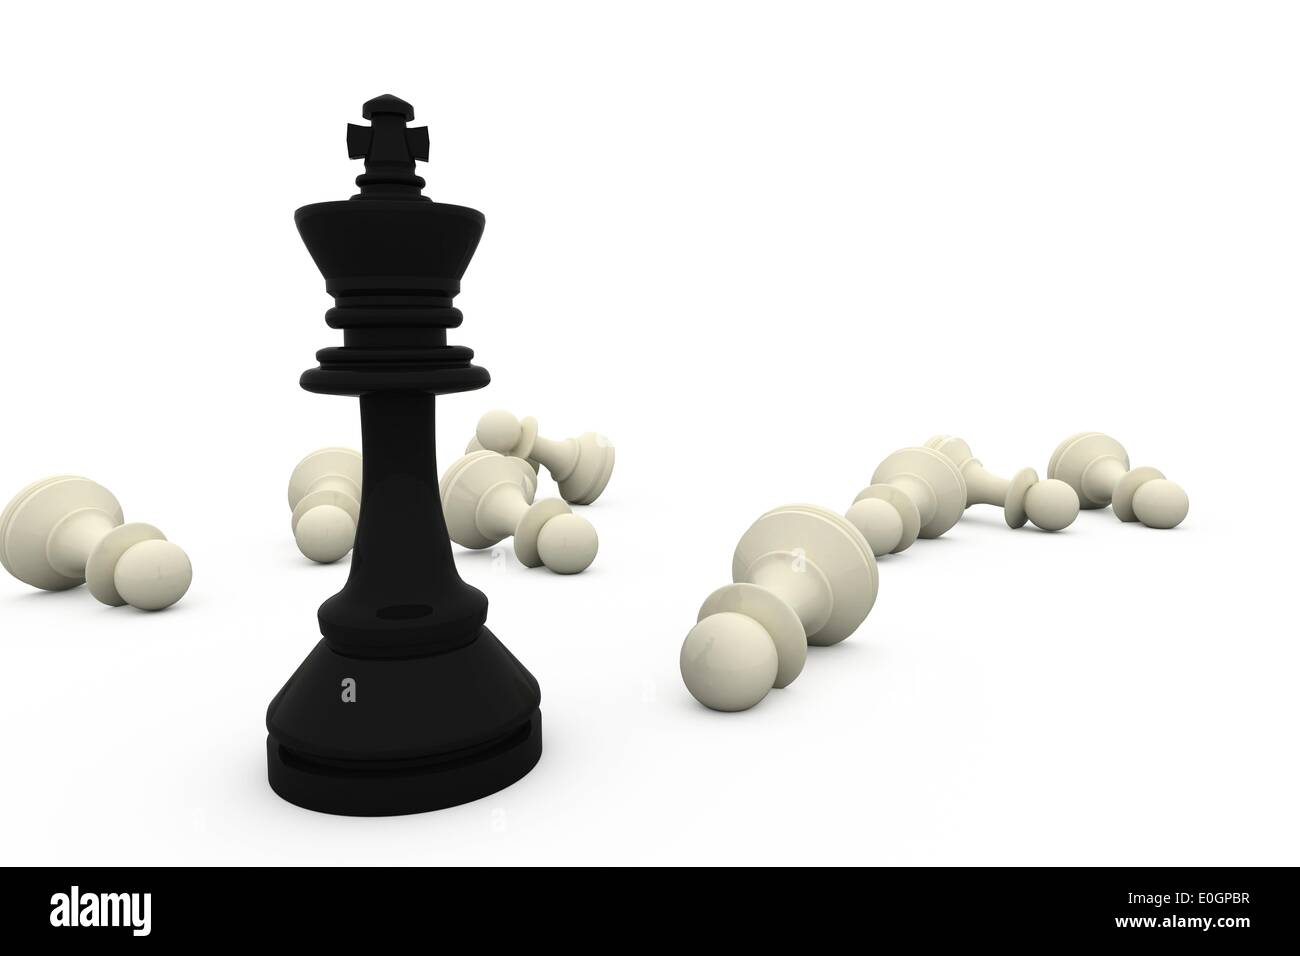 Black king standing among fallen white pieces - Stock Image